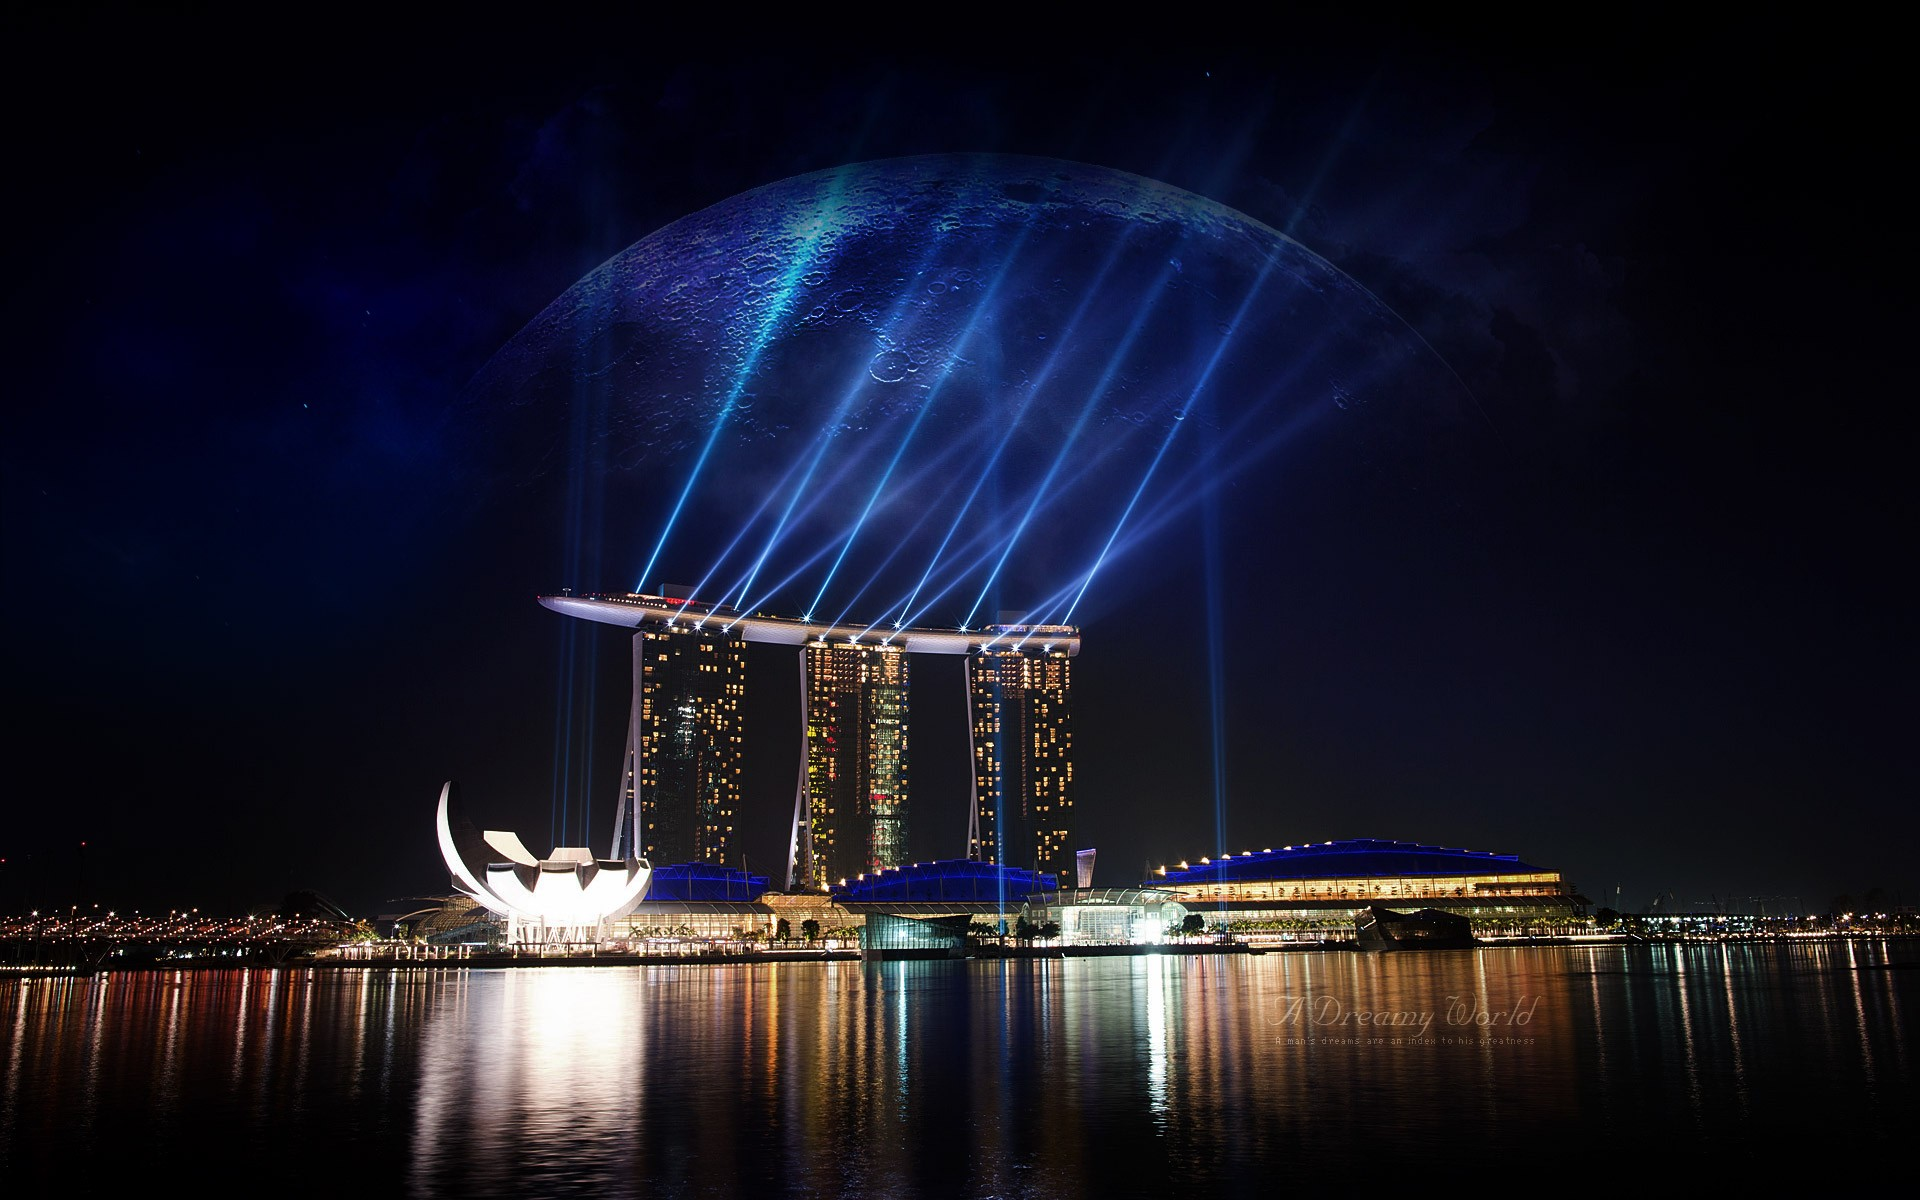 Boat-shaped hotel in Singapore at night